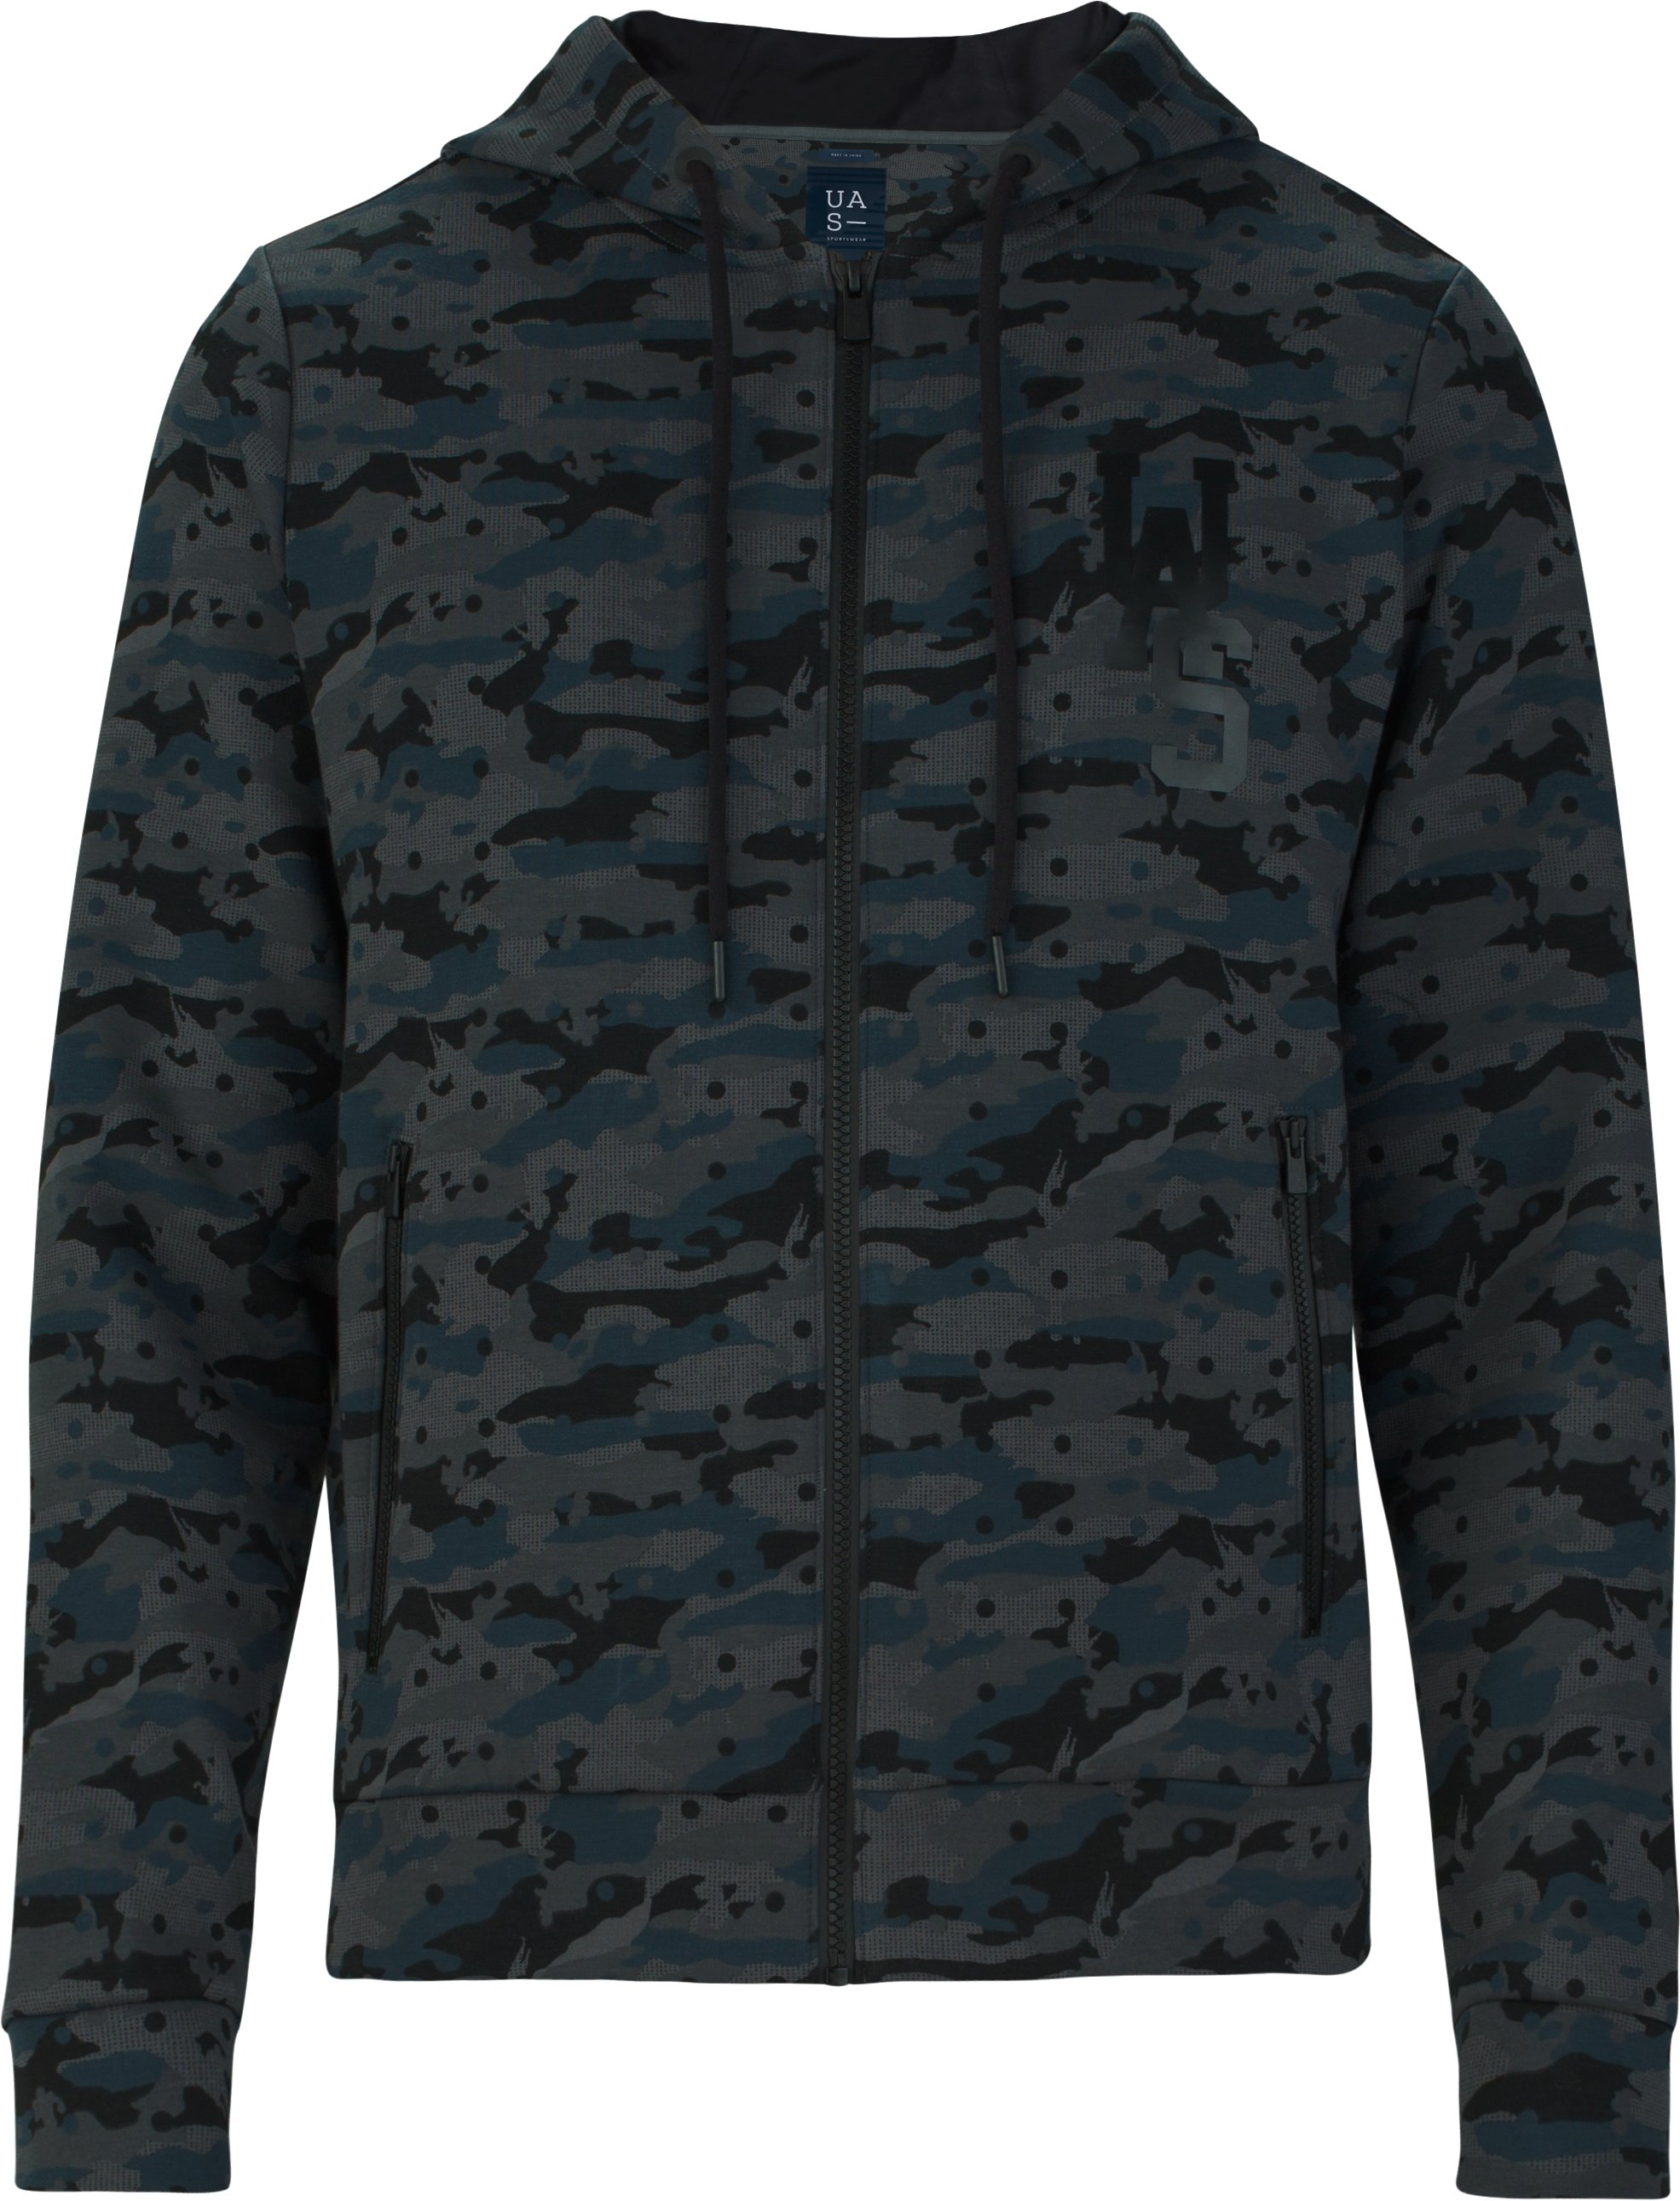 UAS Men's Tailgate Graphic Hoodie, Navy/Black Camo, undefined